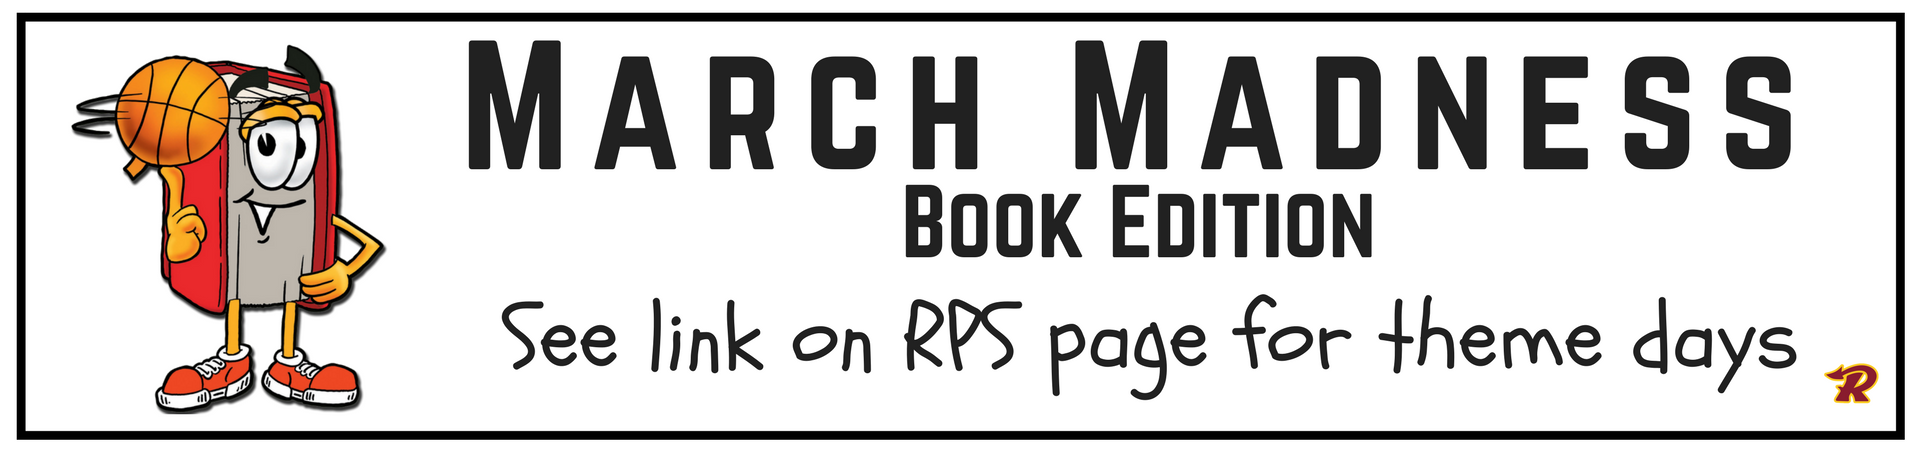 March Madness Book Edition